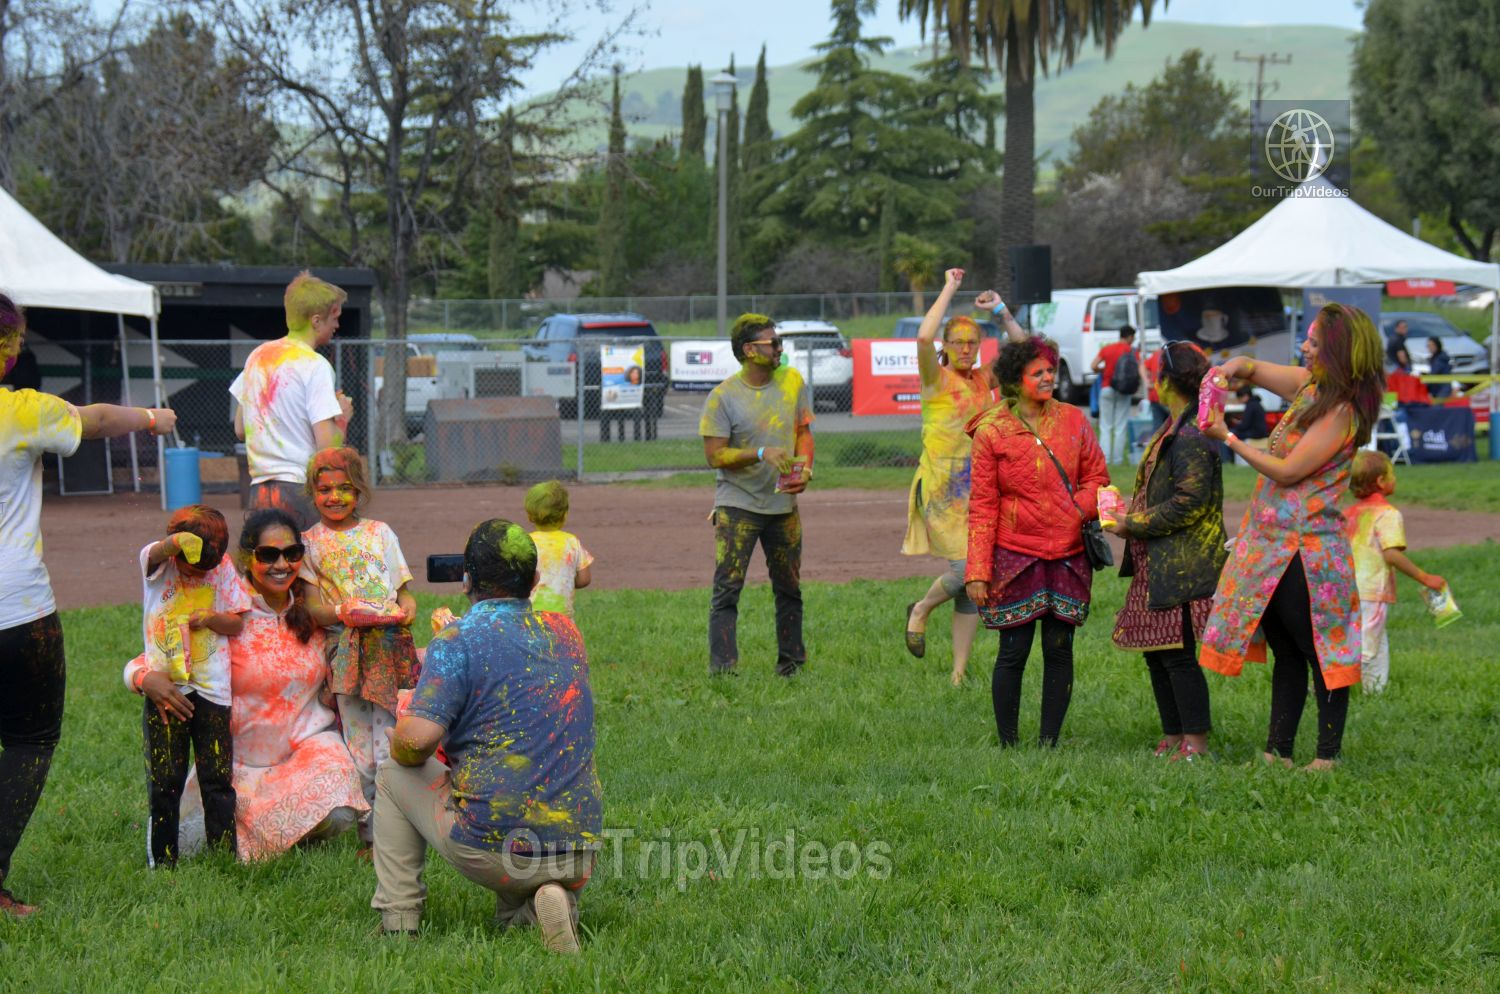 Festival of Colors - FOG and UPMA Holi, Fremont,CA, USA - Picture 5 of 25